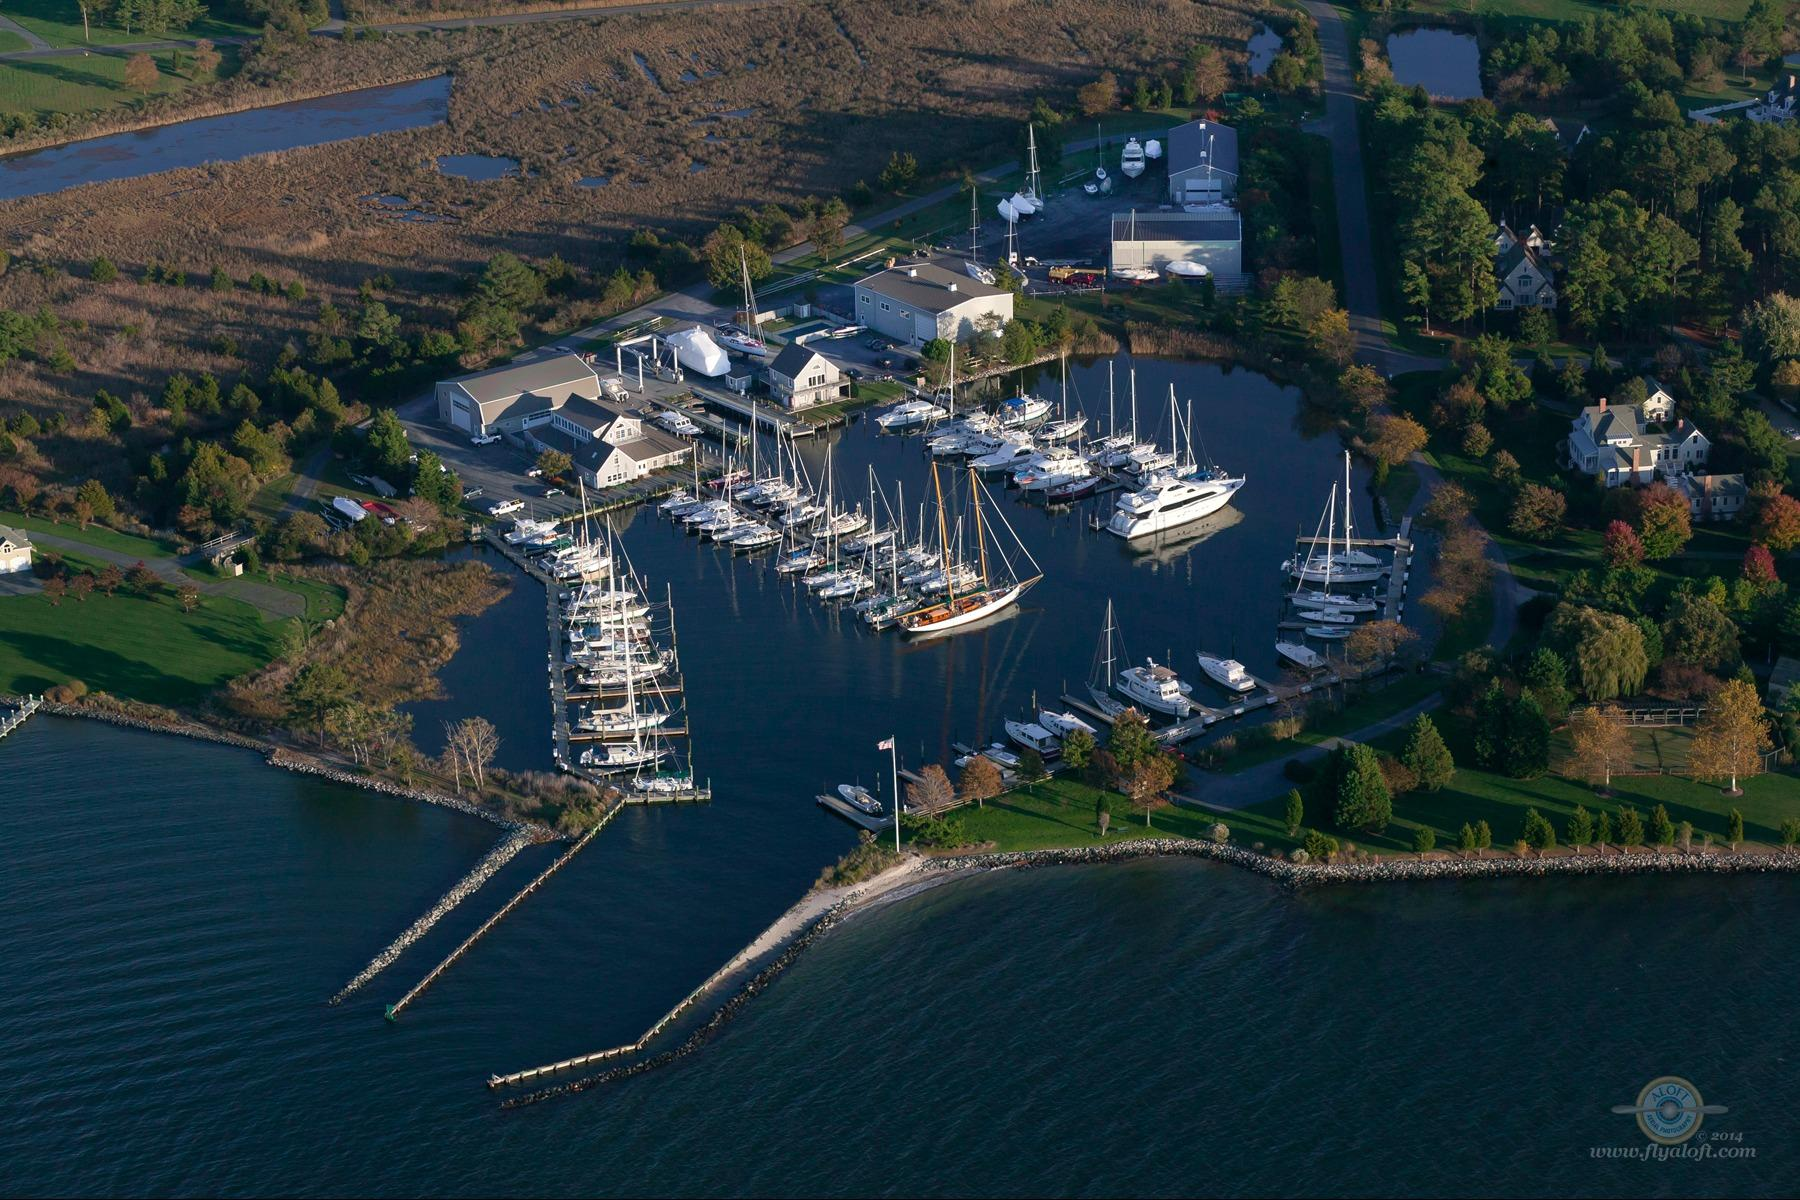 Campbell's Boatyards - Bachelors Point